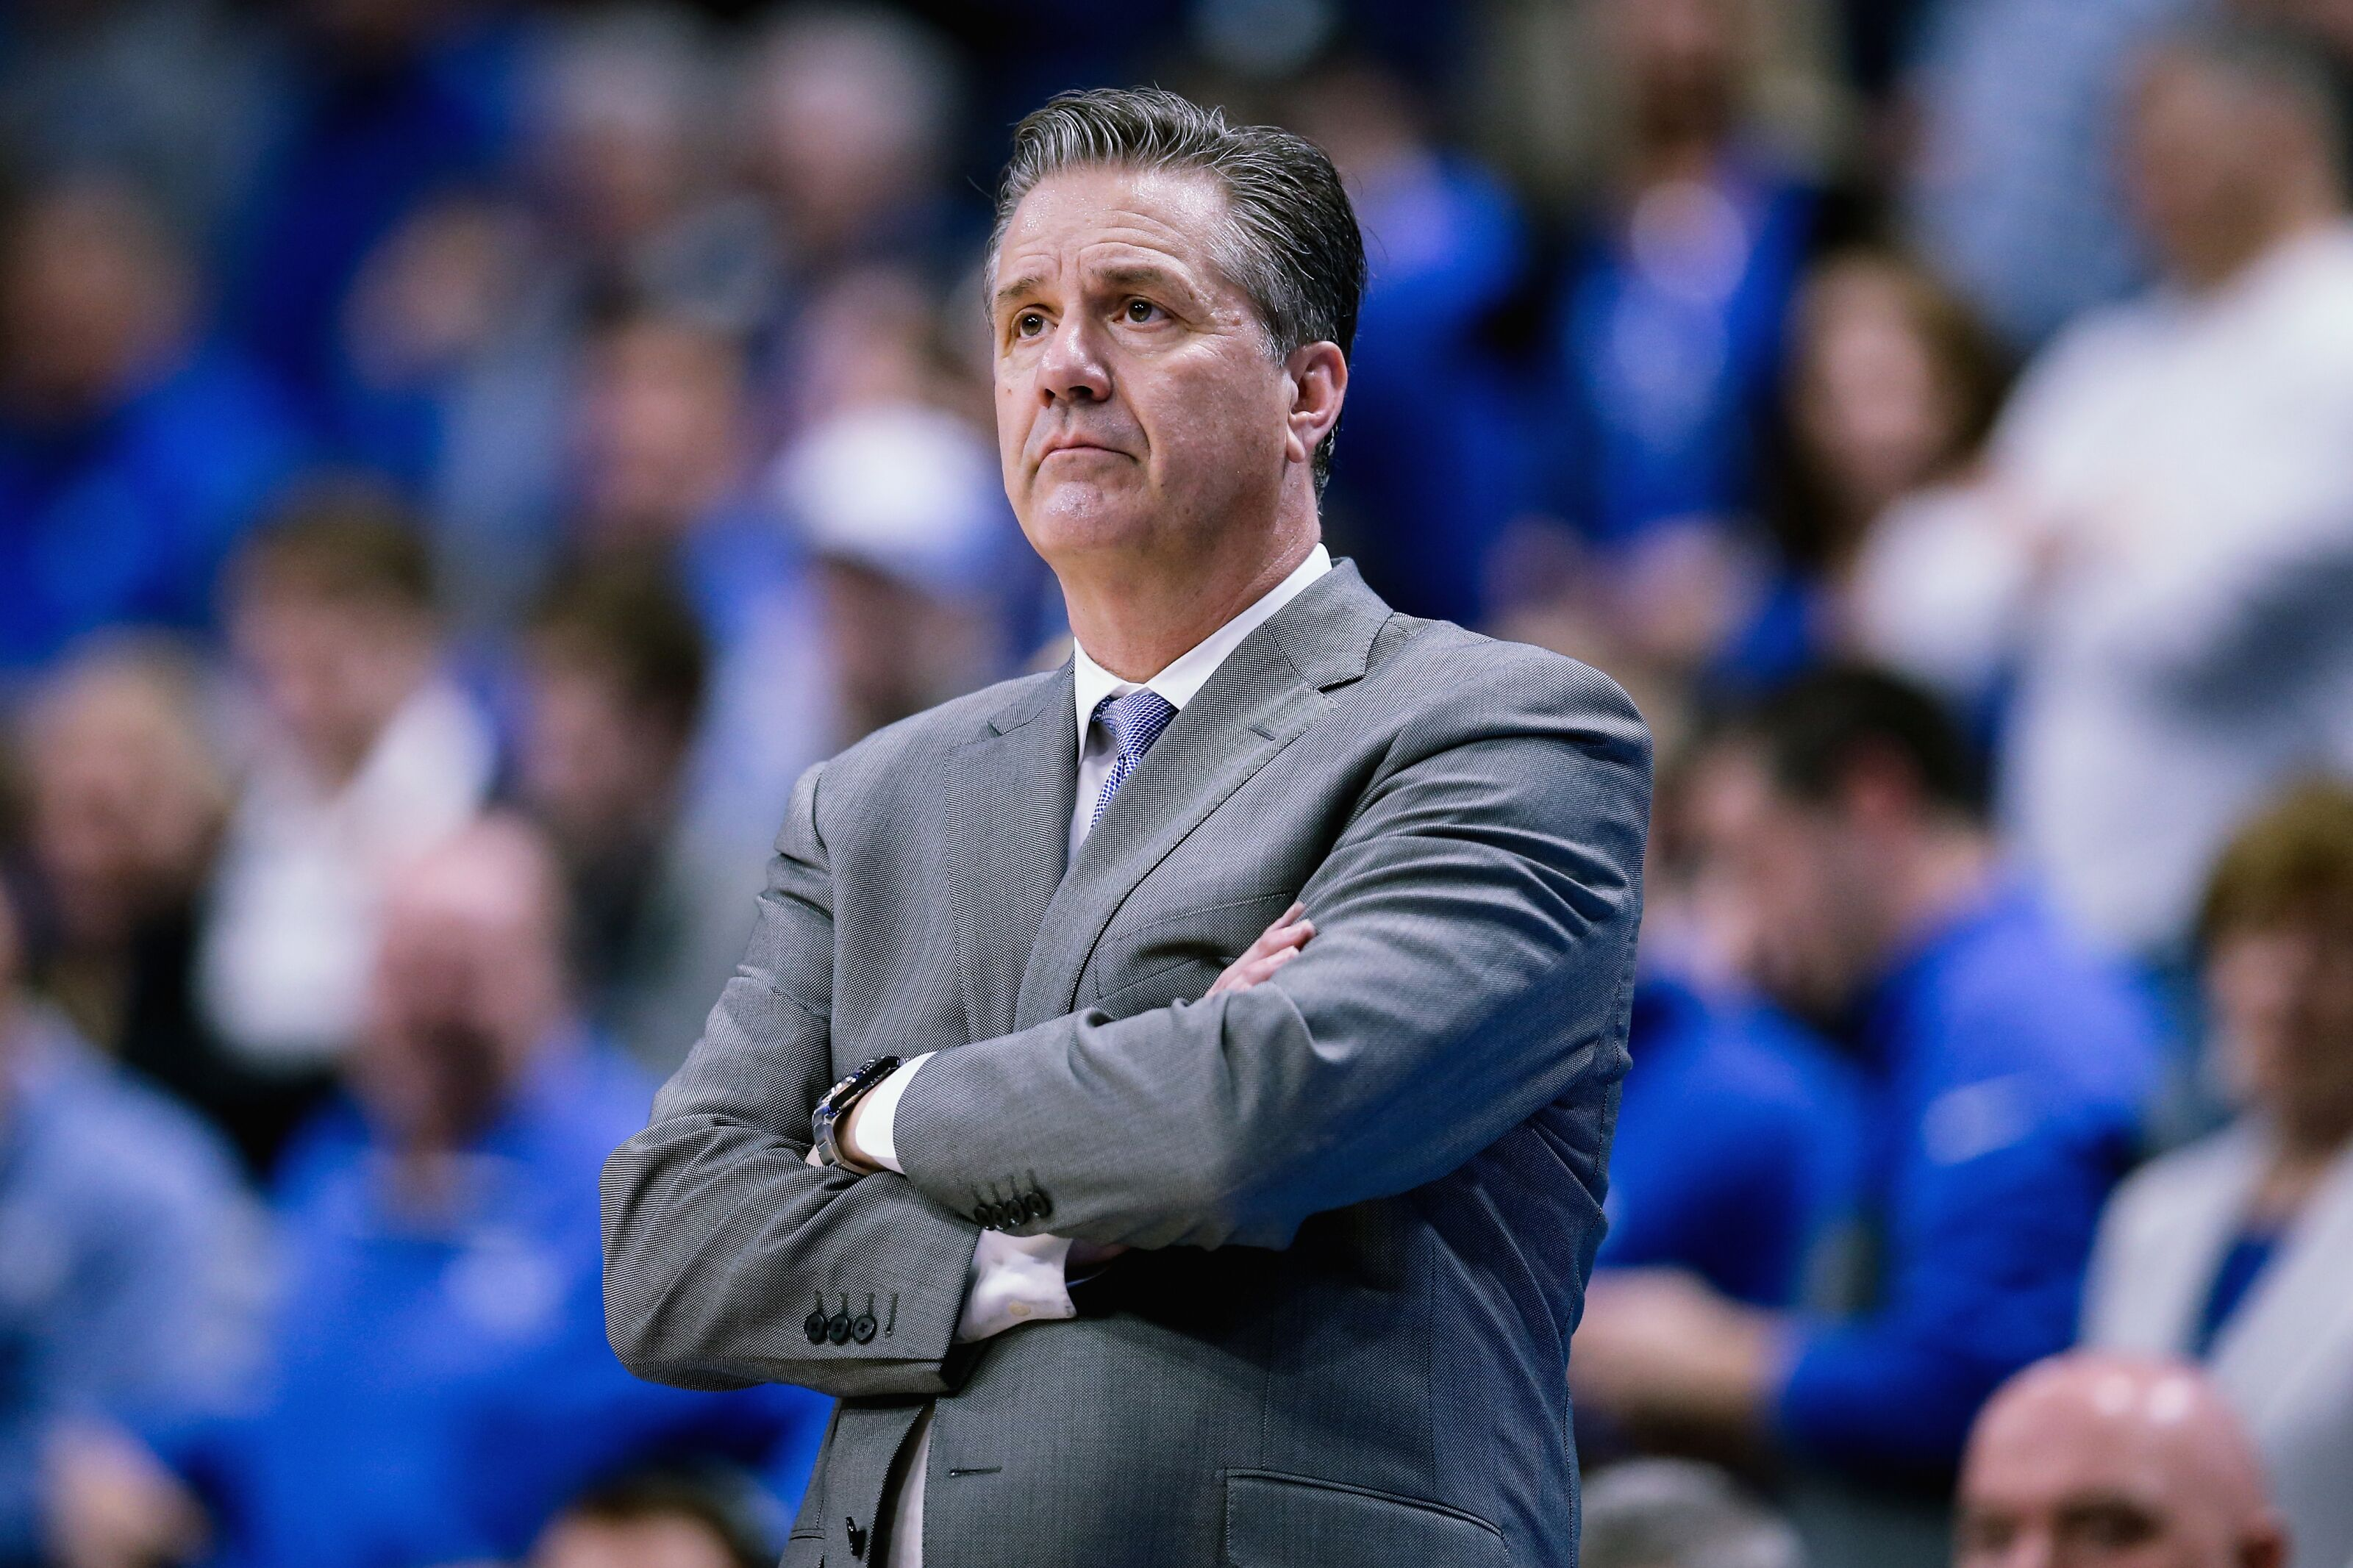 LEXINGTON, KENTUCKY - MARCH 09: Head coach John Calipari of the Kentucky Wildcats looks on in the second half against the Florida Gators at Rupp Arena on March 09, 2019 in Lexington, Kentucky. (Photo by Dylan Buell/Getty Images)